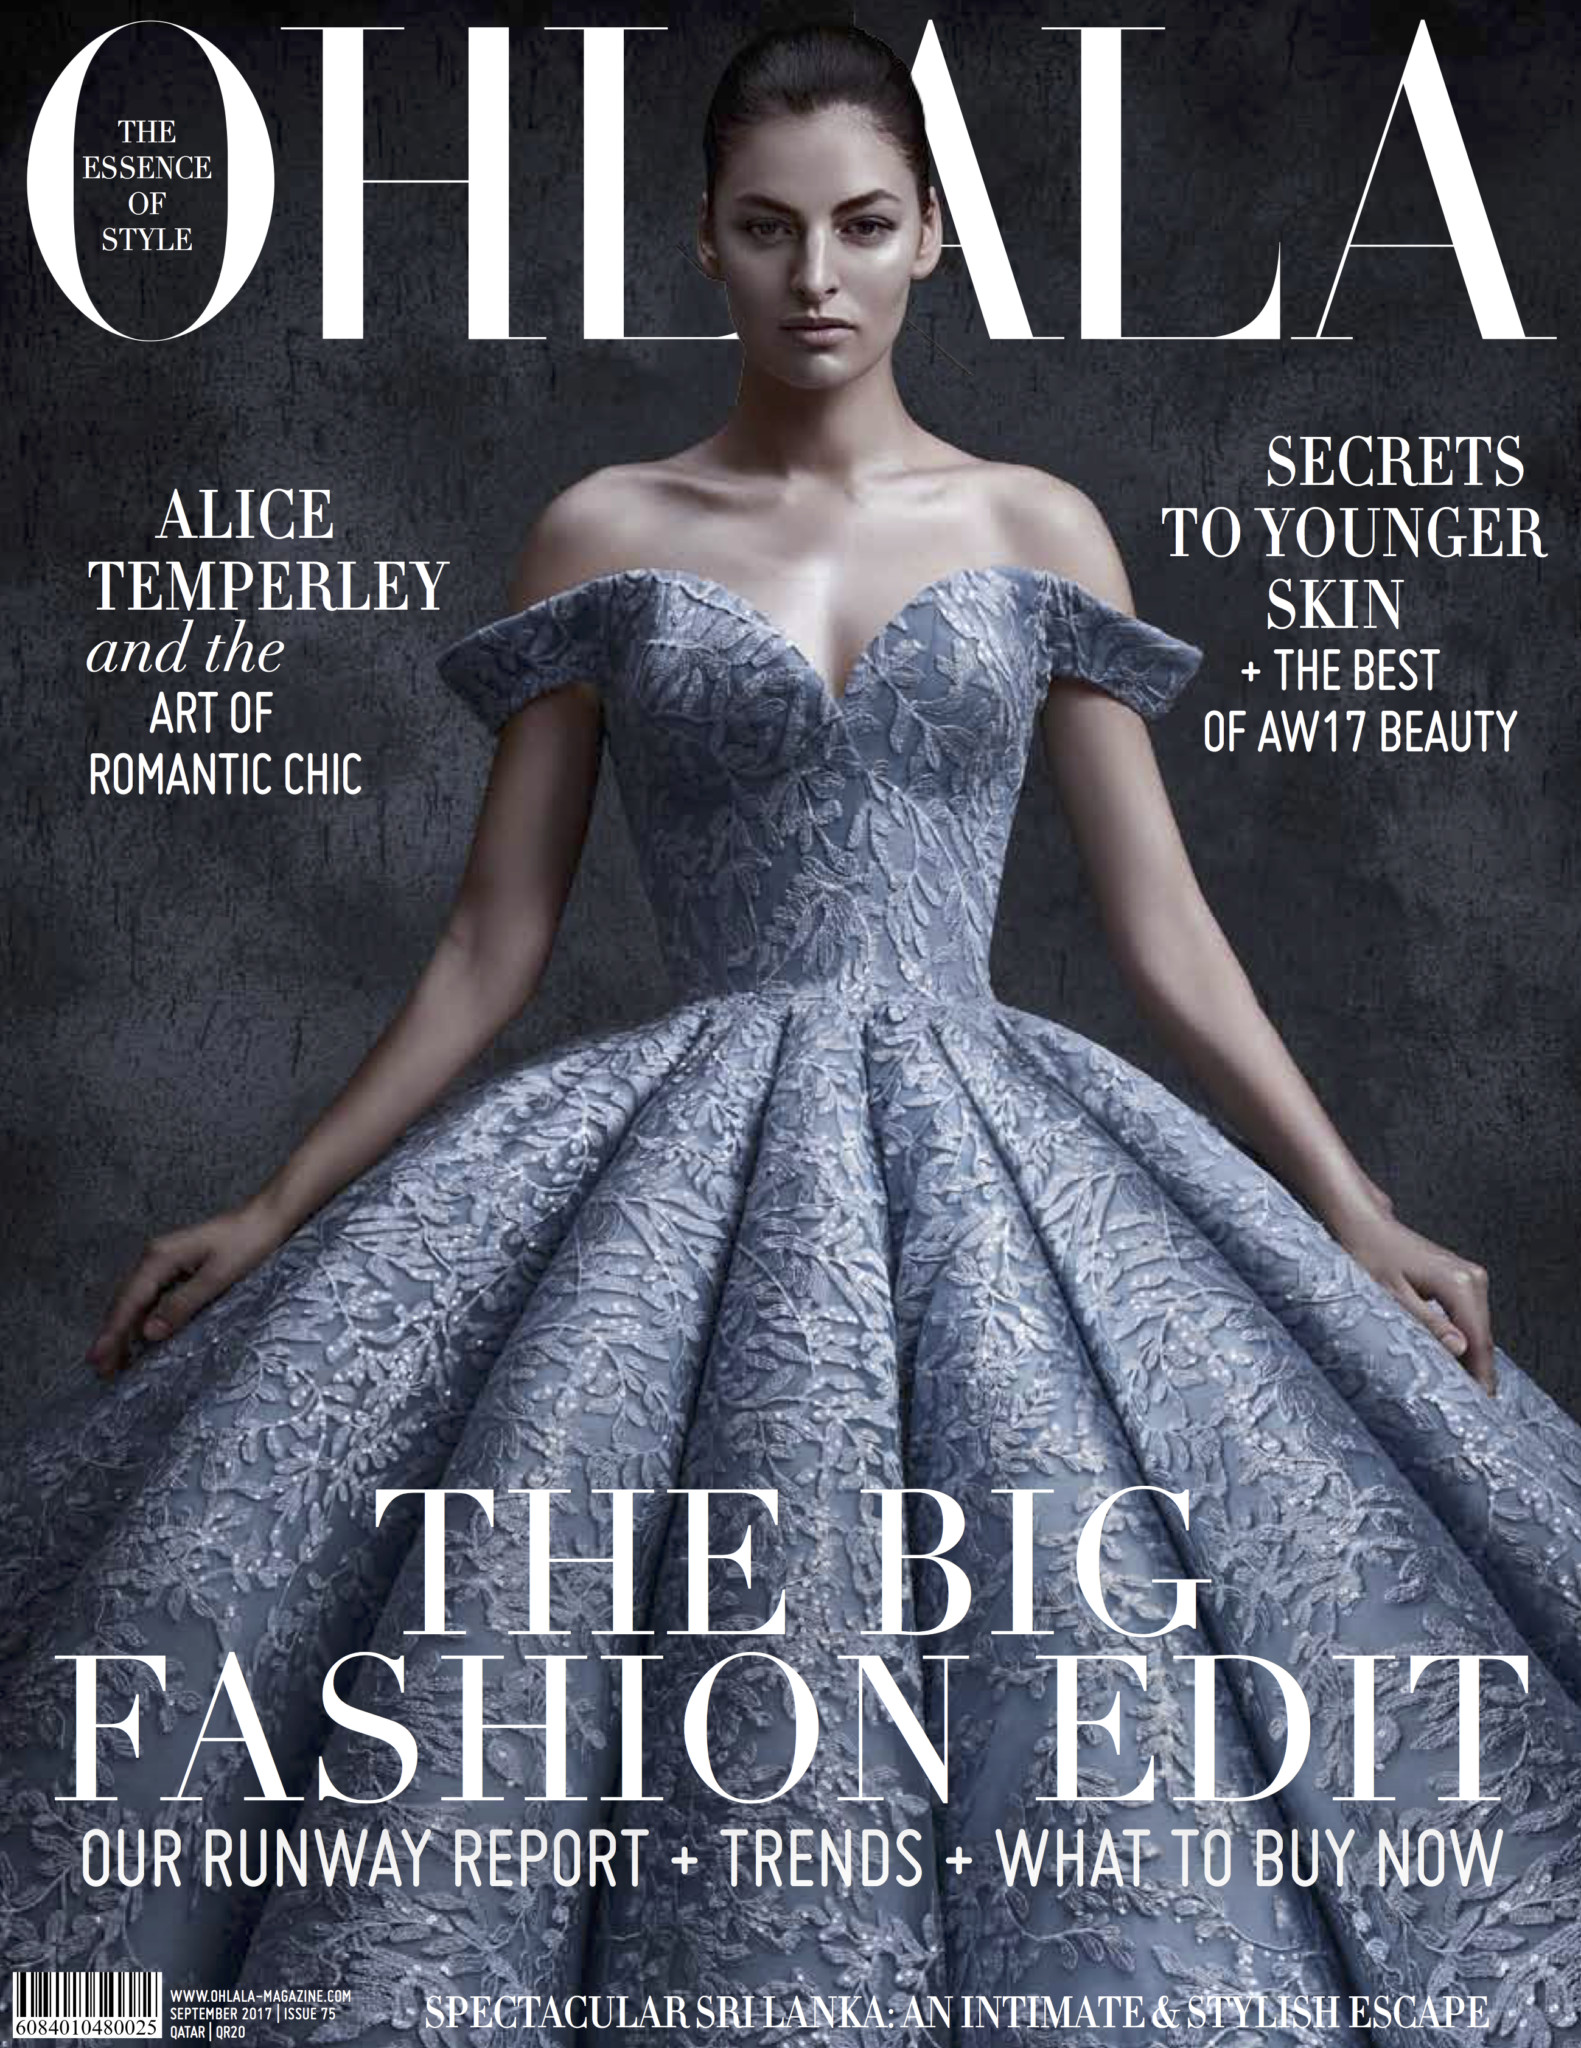 Ohlala The Essence Of Style